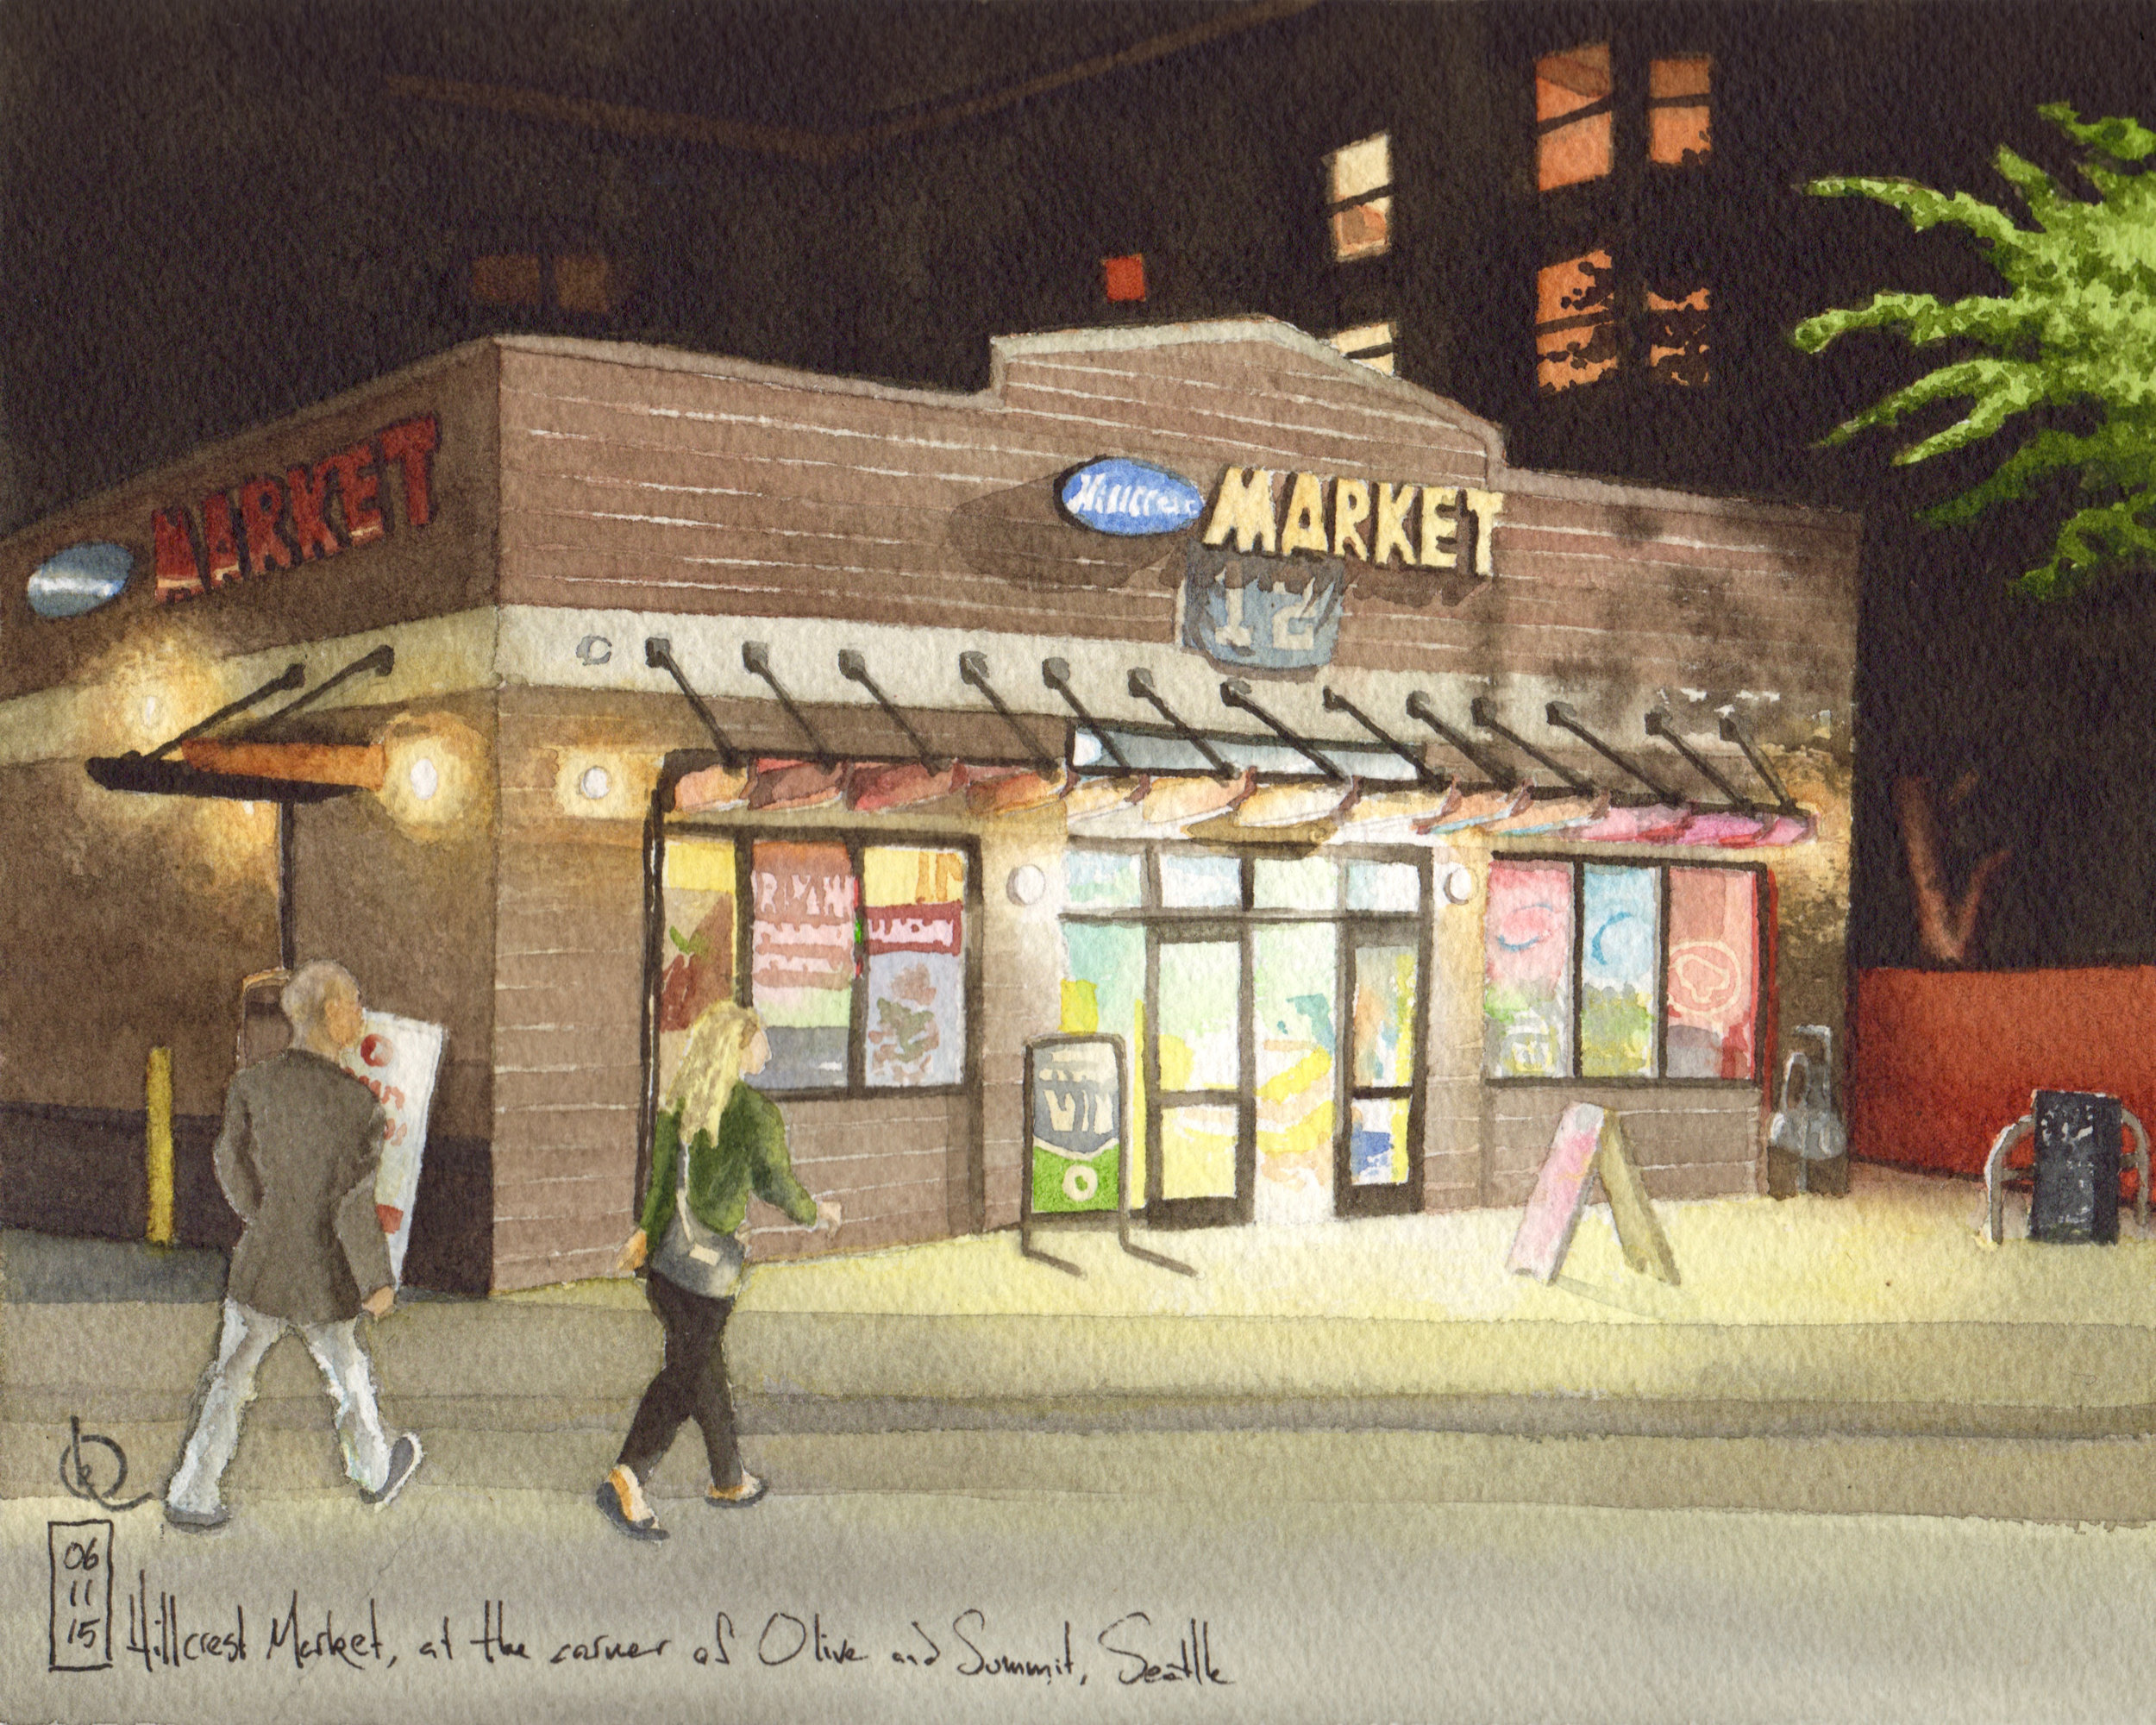 Hillcrest Market, on the corner of Summit and Olive, Seattle